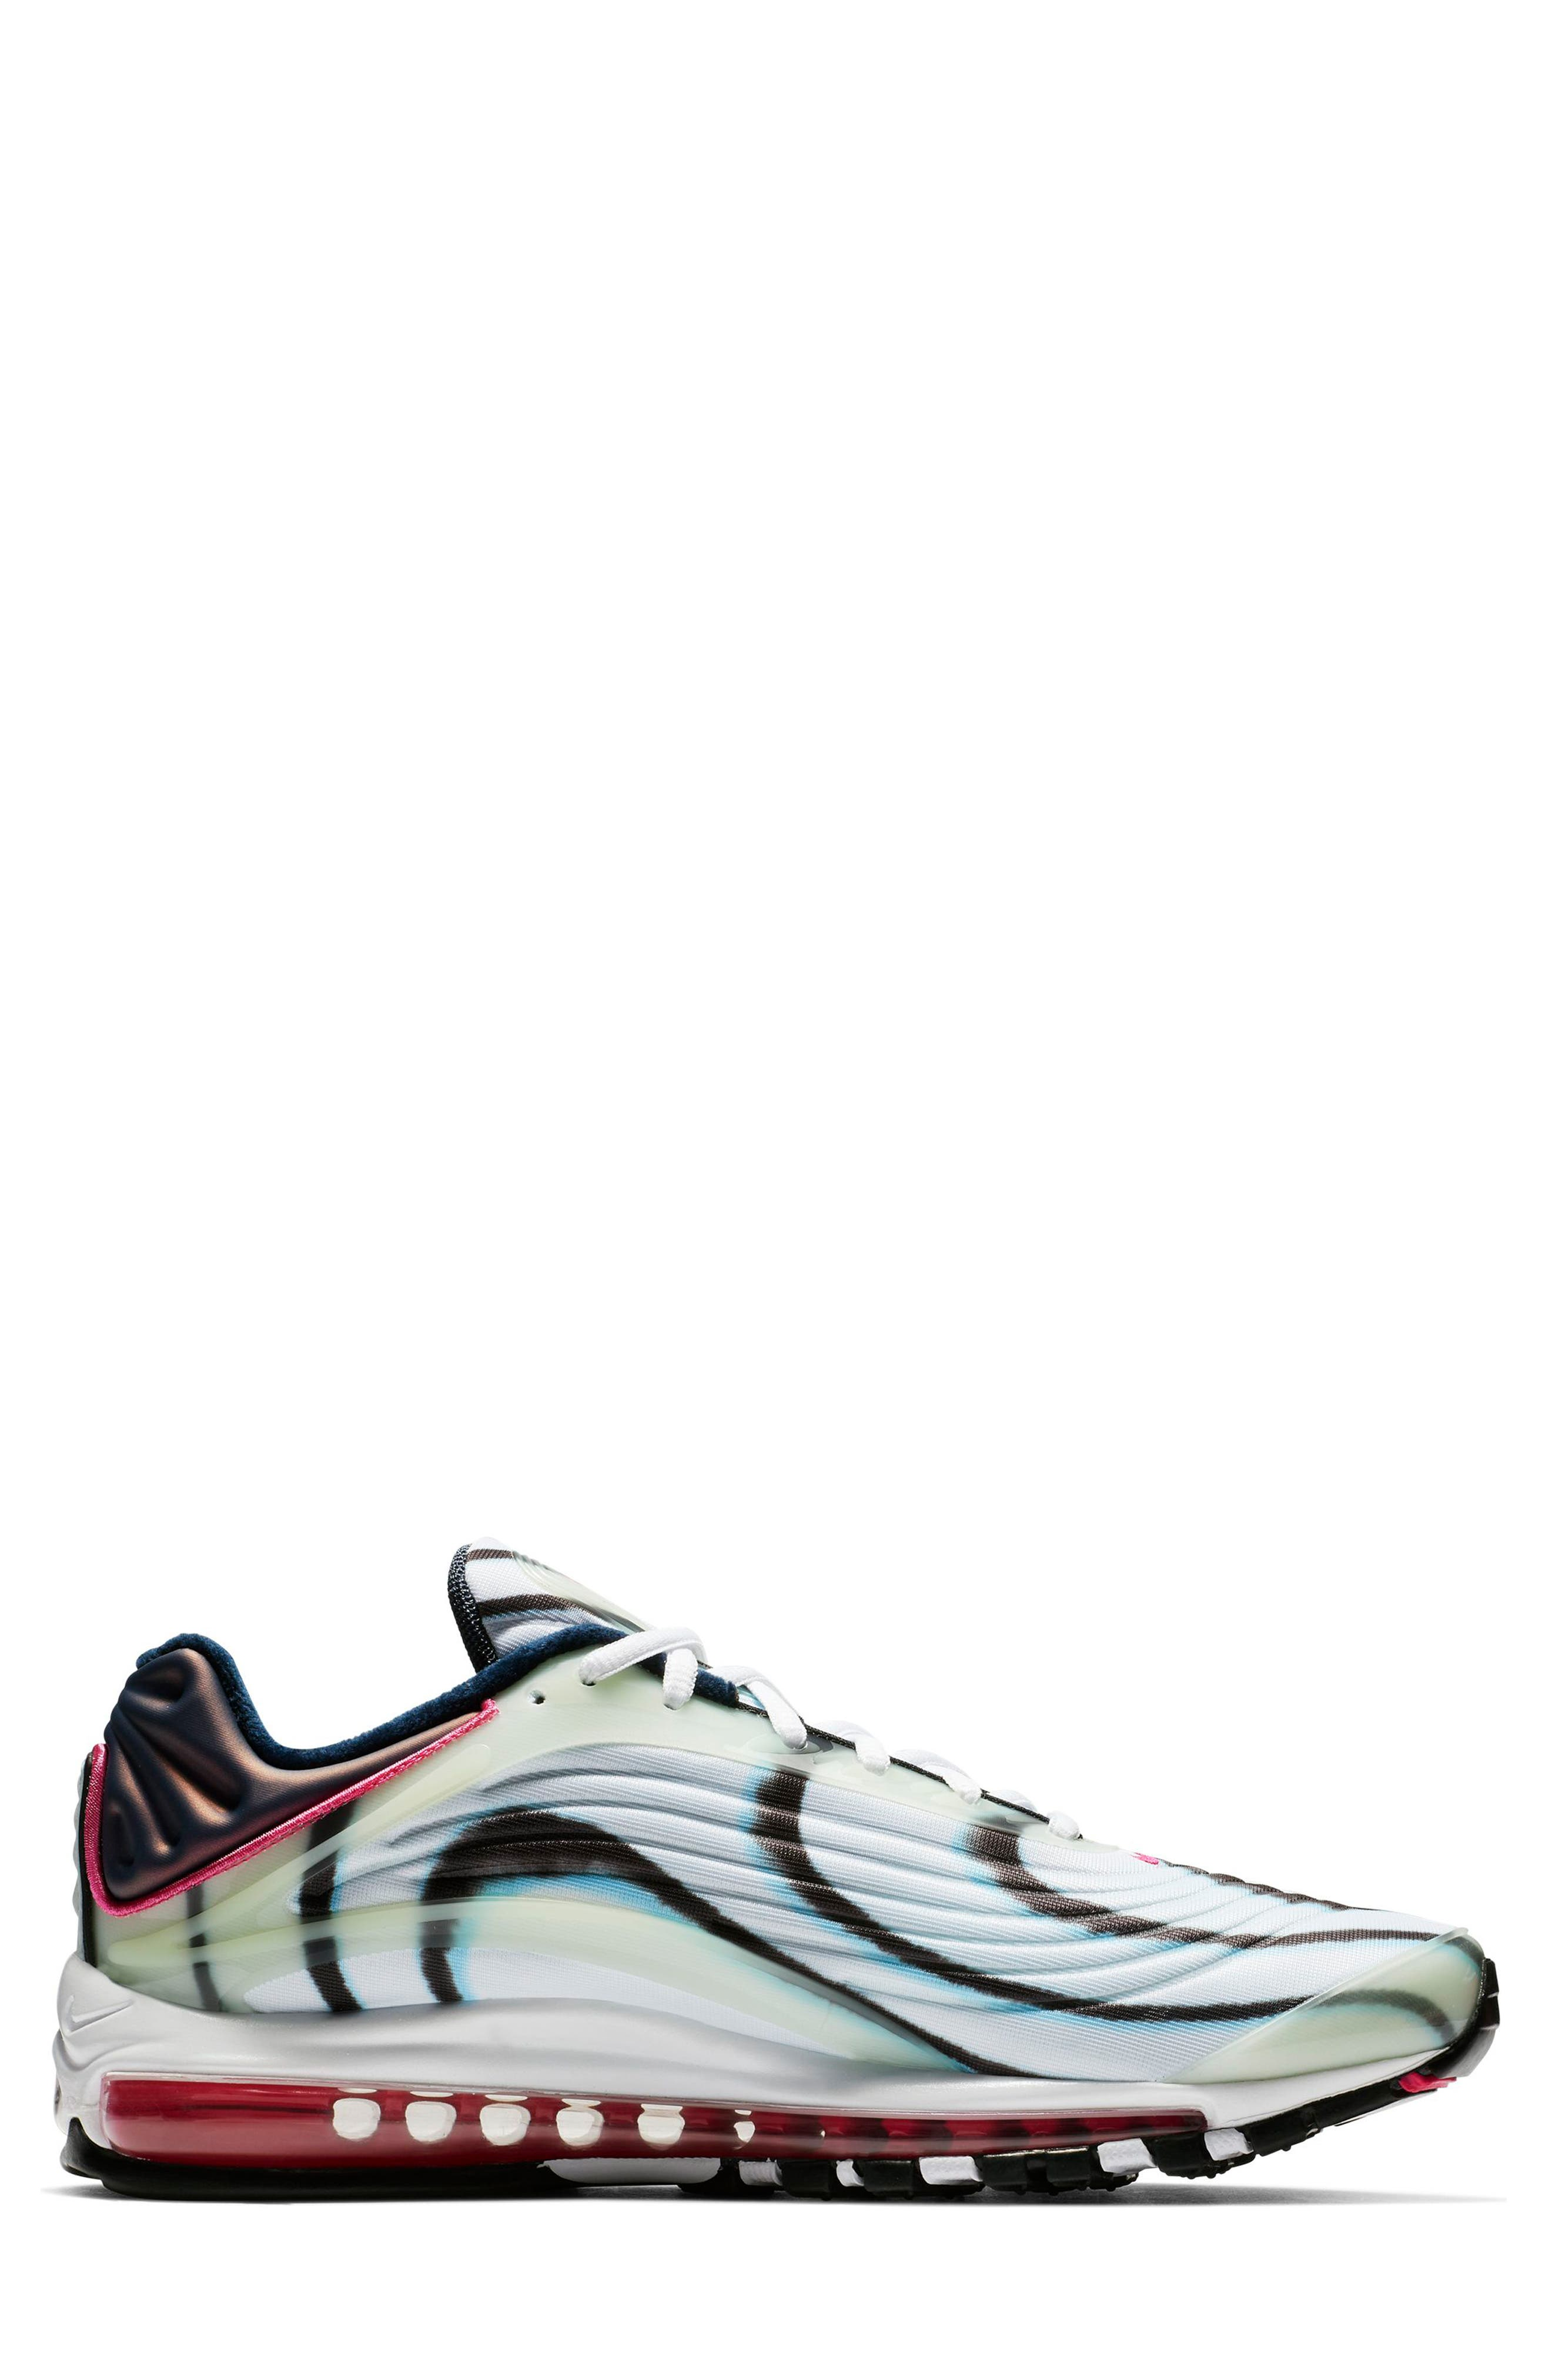 Air Max Deluxe Sneaker,                             Alternate thumbnail 8, color,                             GREEN/ SILVER/ OBSIDIAN/ BLACK